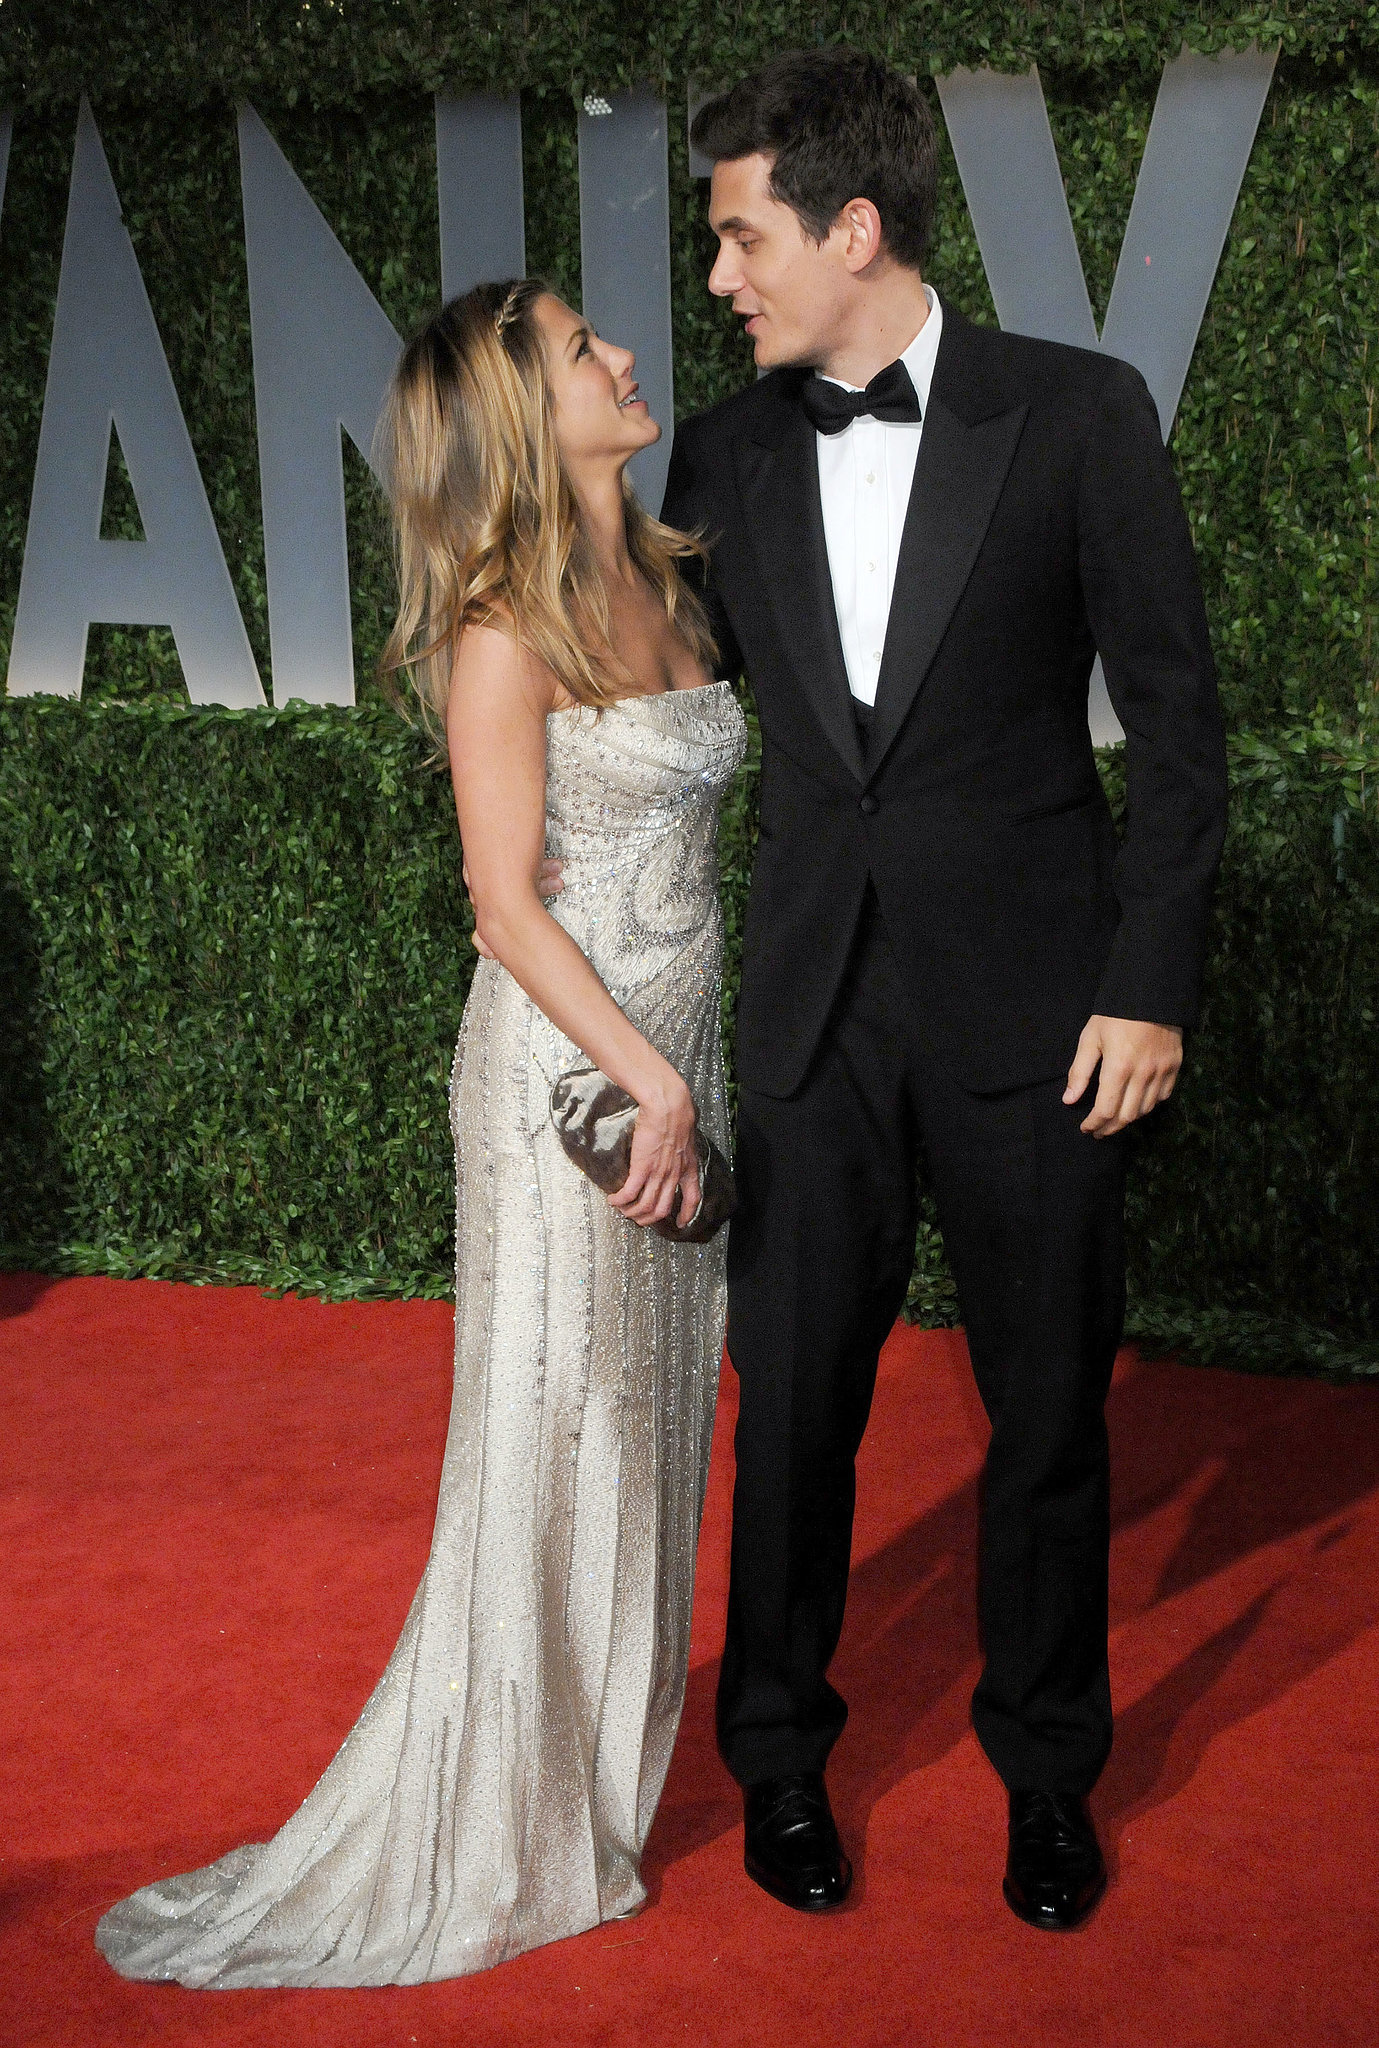 Jennifer Aniston was a welcome addition to the 2009 show, to which she brought then-boyfriend John Mayer as her date.